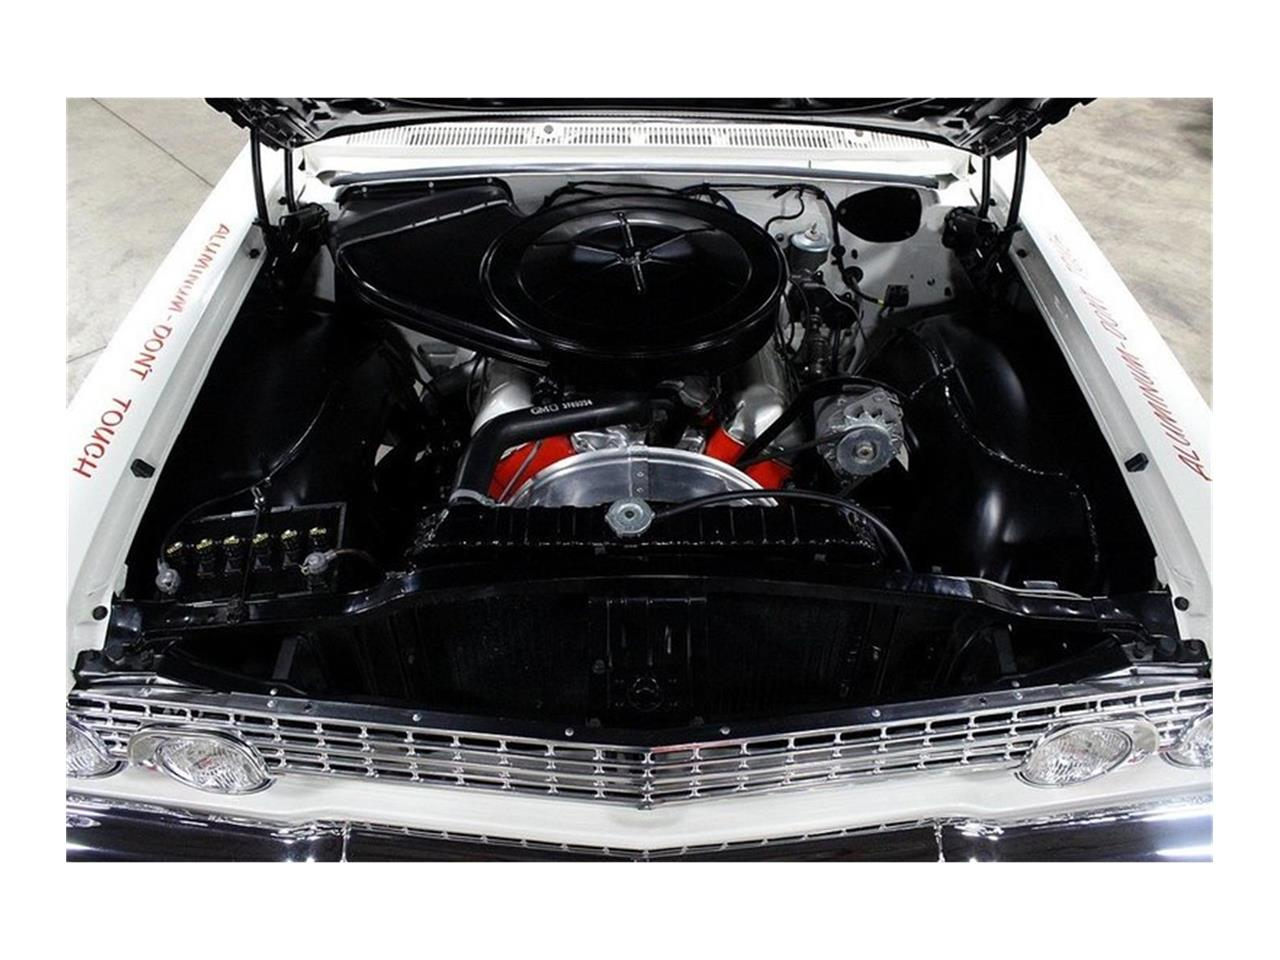 Large Picture of Classic '63 Chevrolet Impala - $360,000.00 - QK96